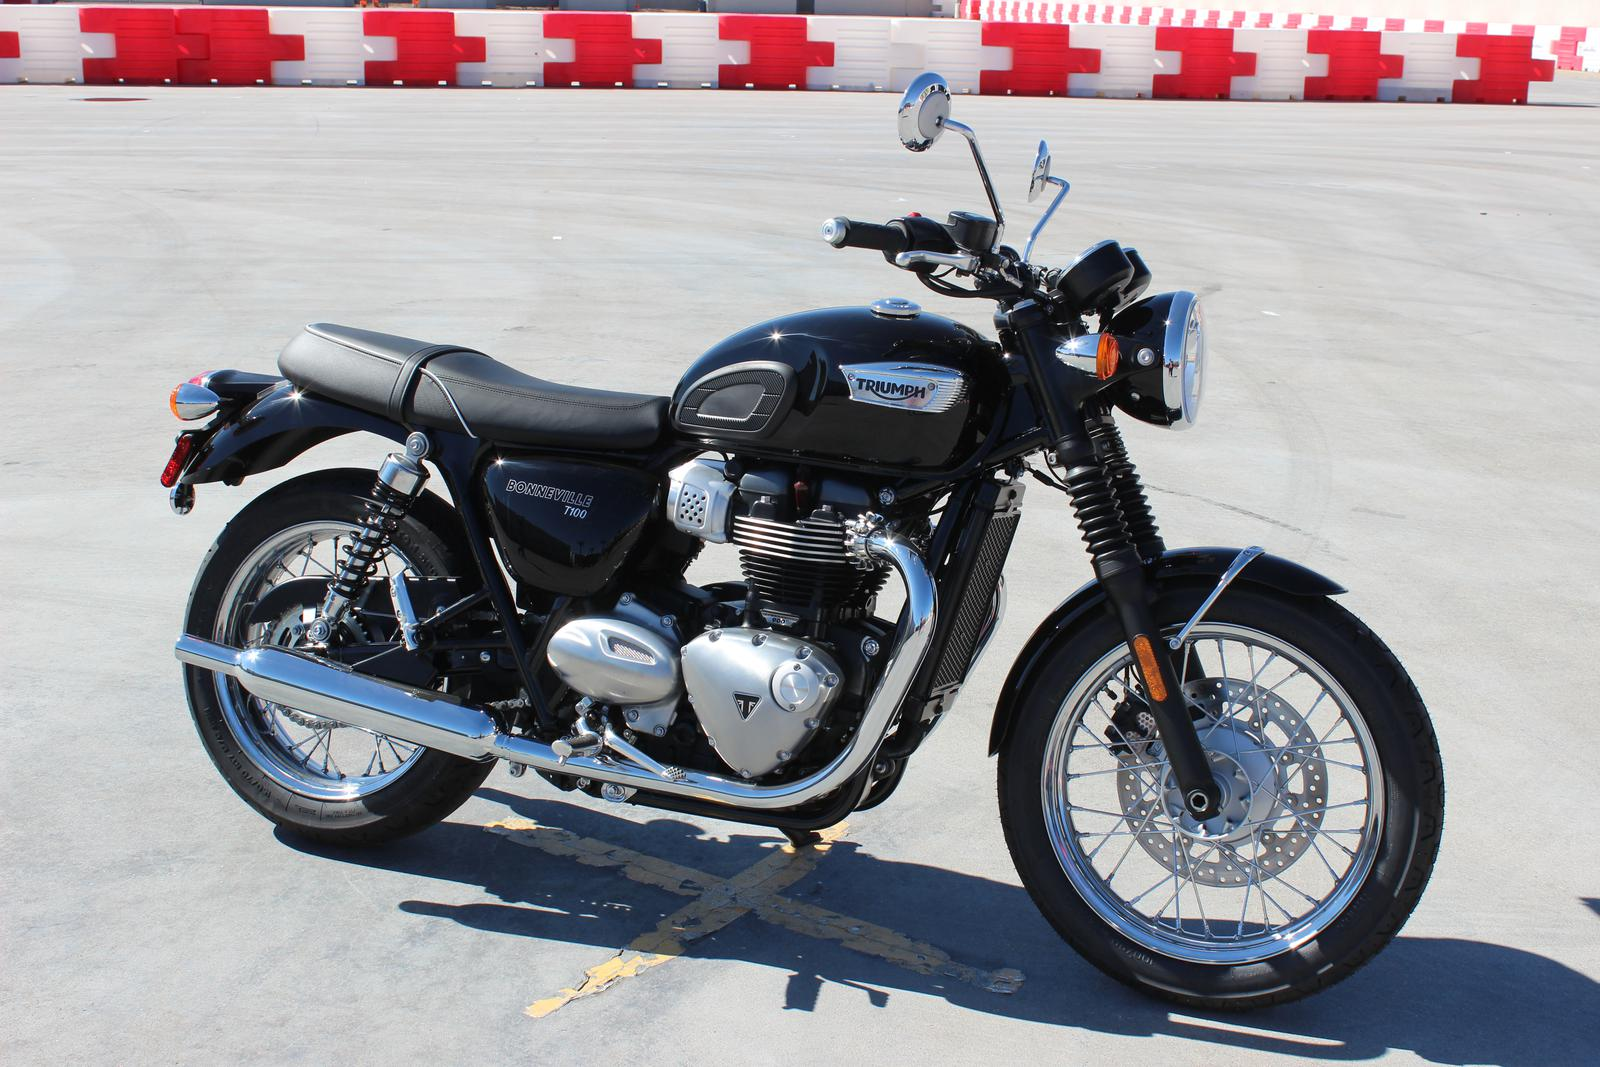 2019 Triumph Bonneville T100 For Sale In Scottsdale Az Go Az